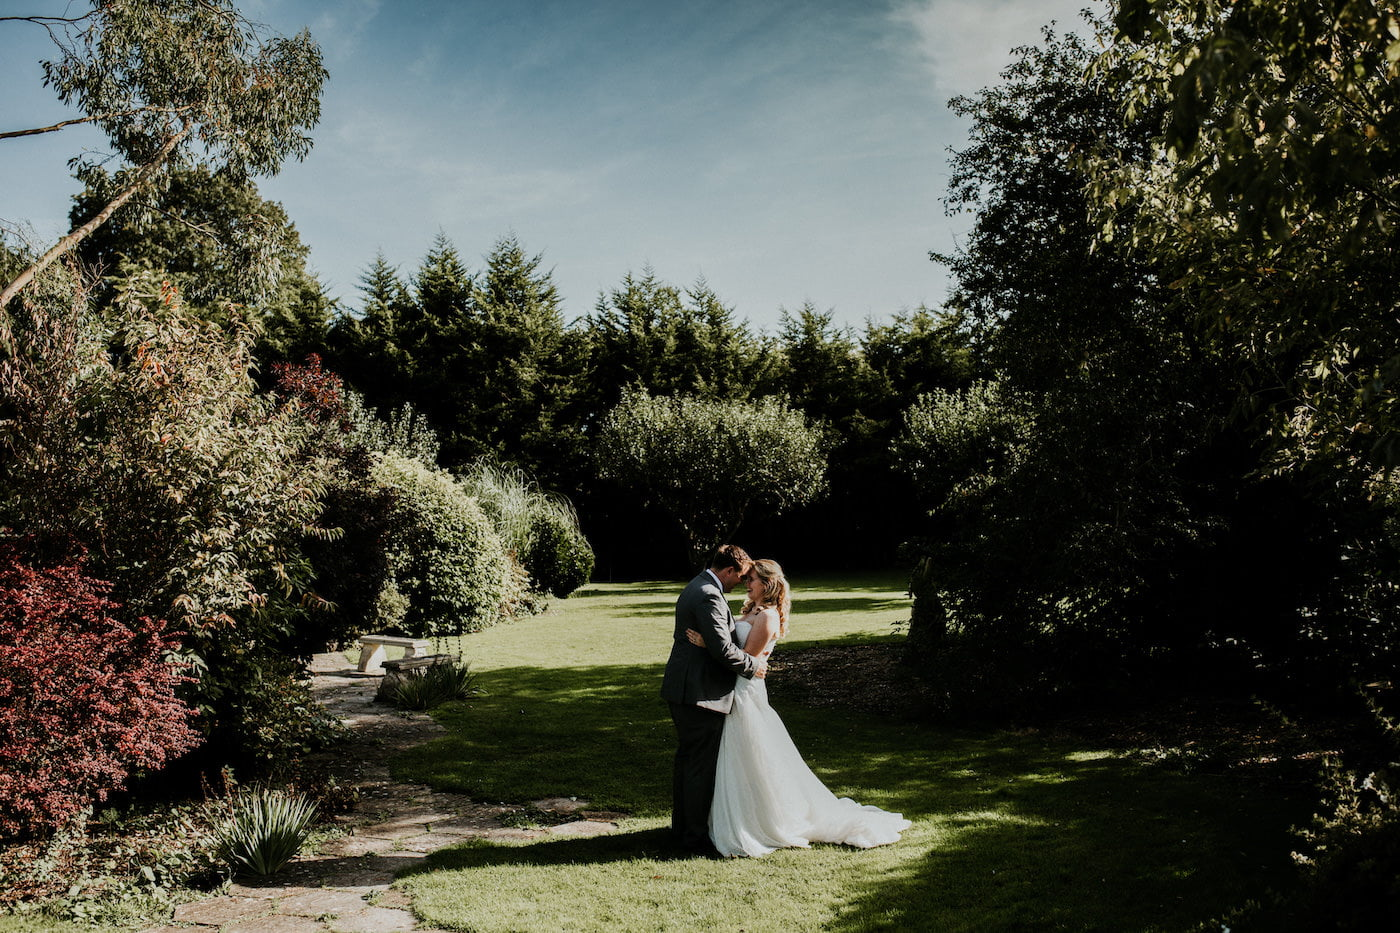 Alex and Jen, Widbrook Grange, Wiltshire 10